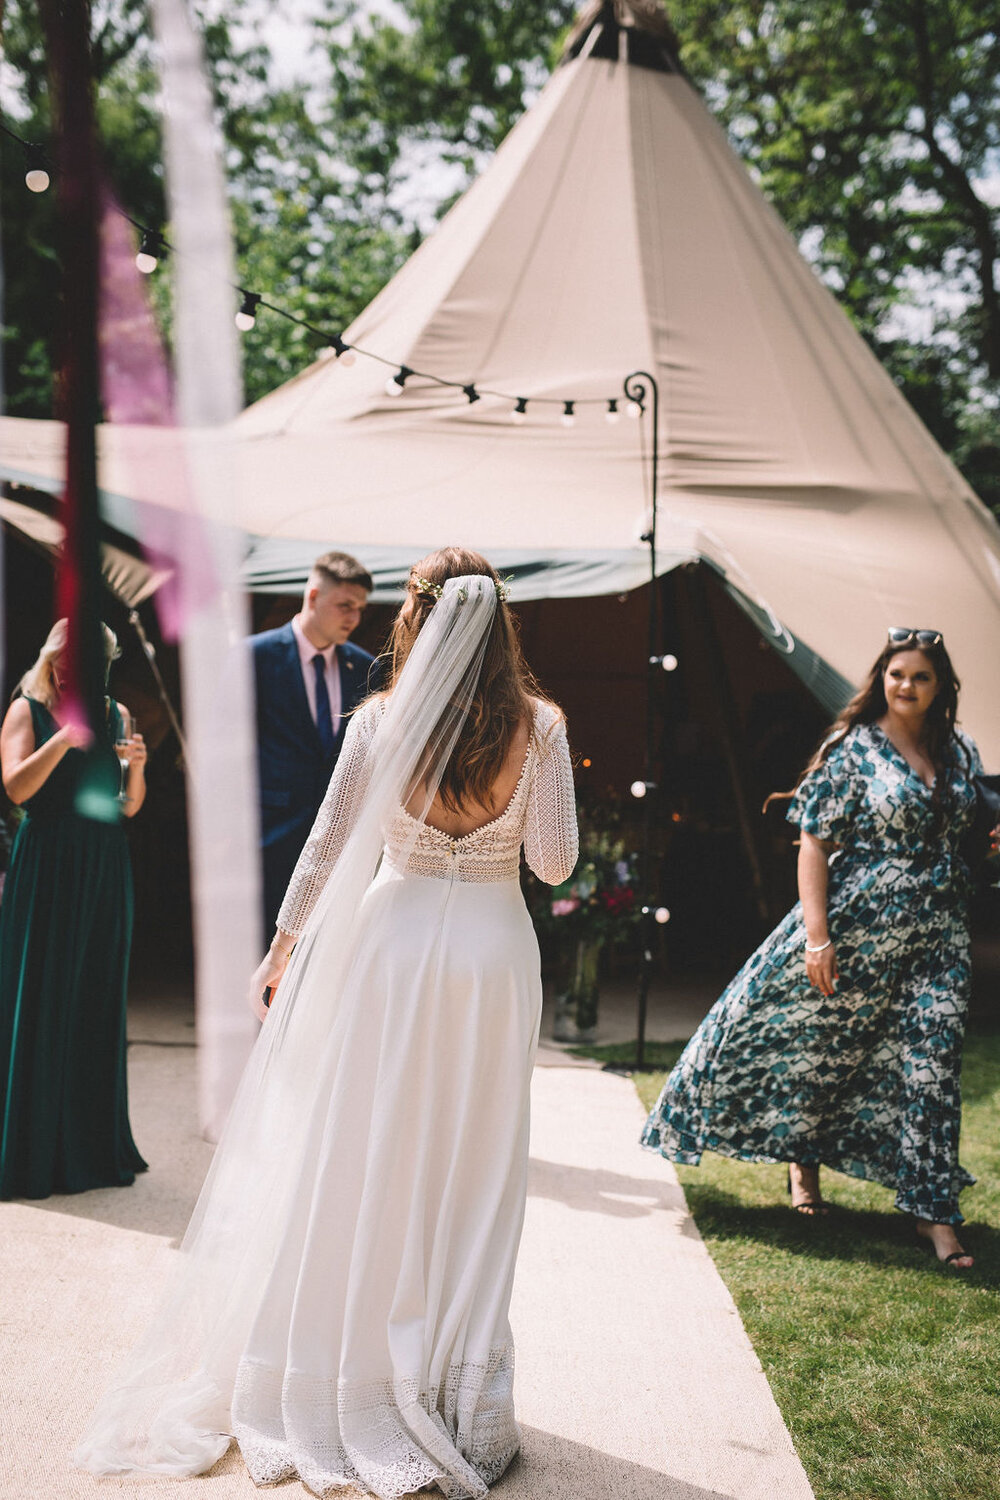 27_Charlotte-Joe-PapaKåta-Tipi-Tent-Wedding-North-Yorkshire-Lumiere-Photography-Wedding-Dress-Details.jpg